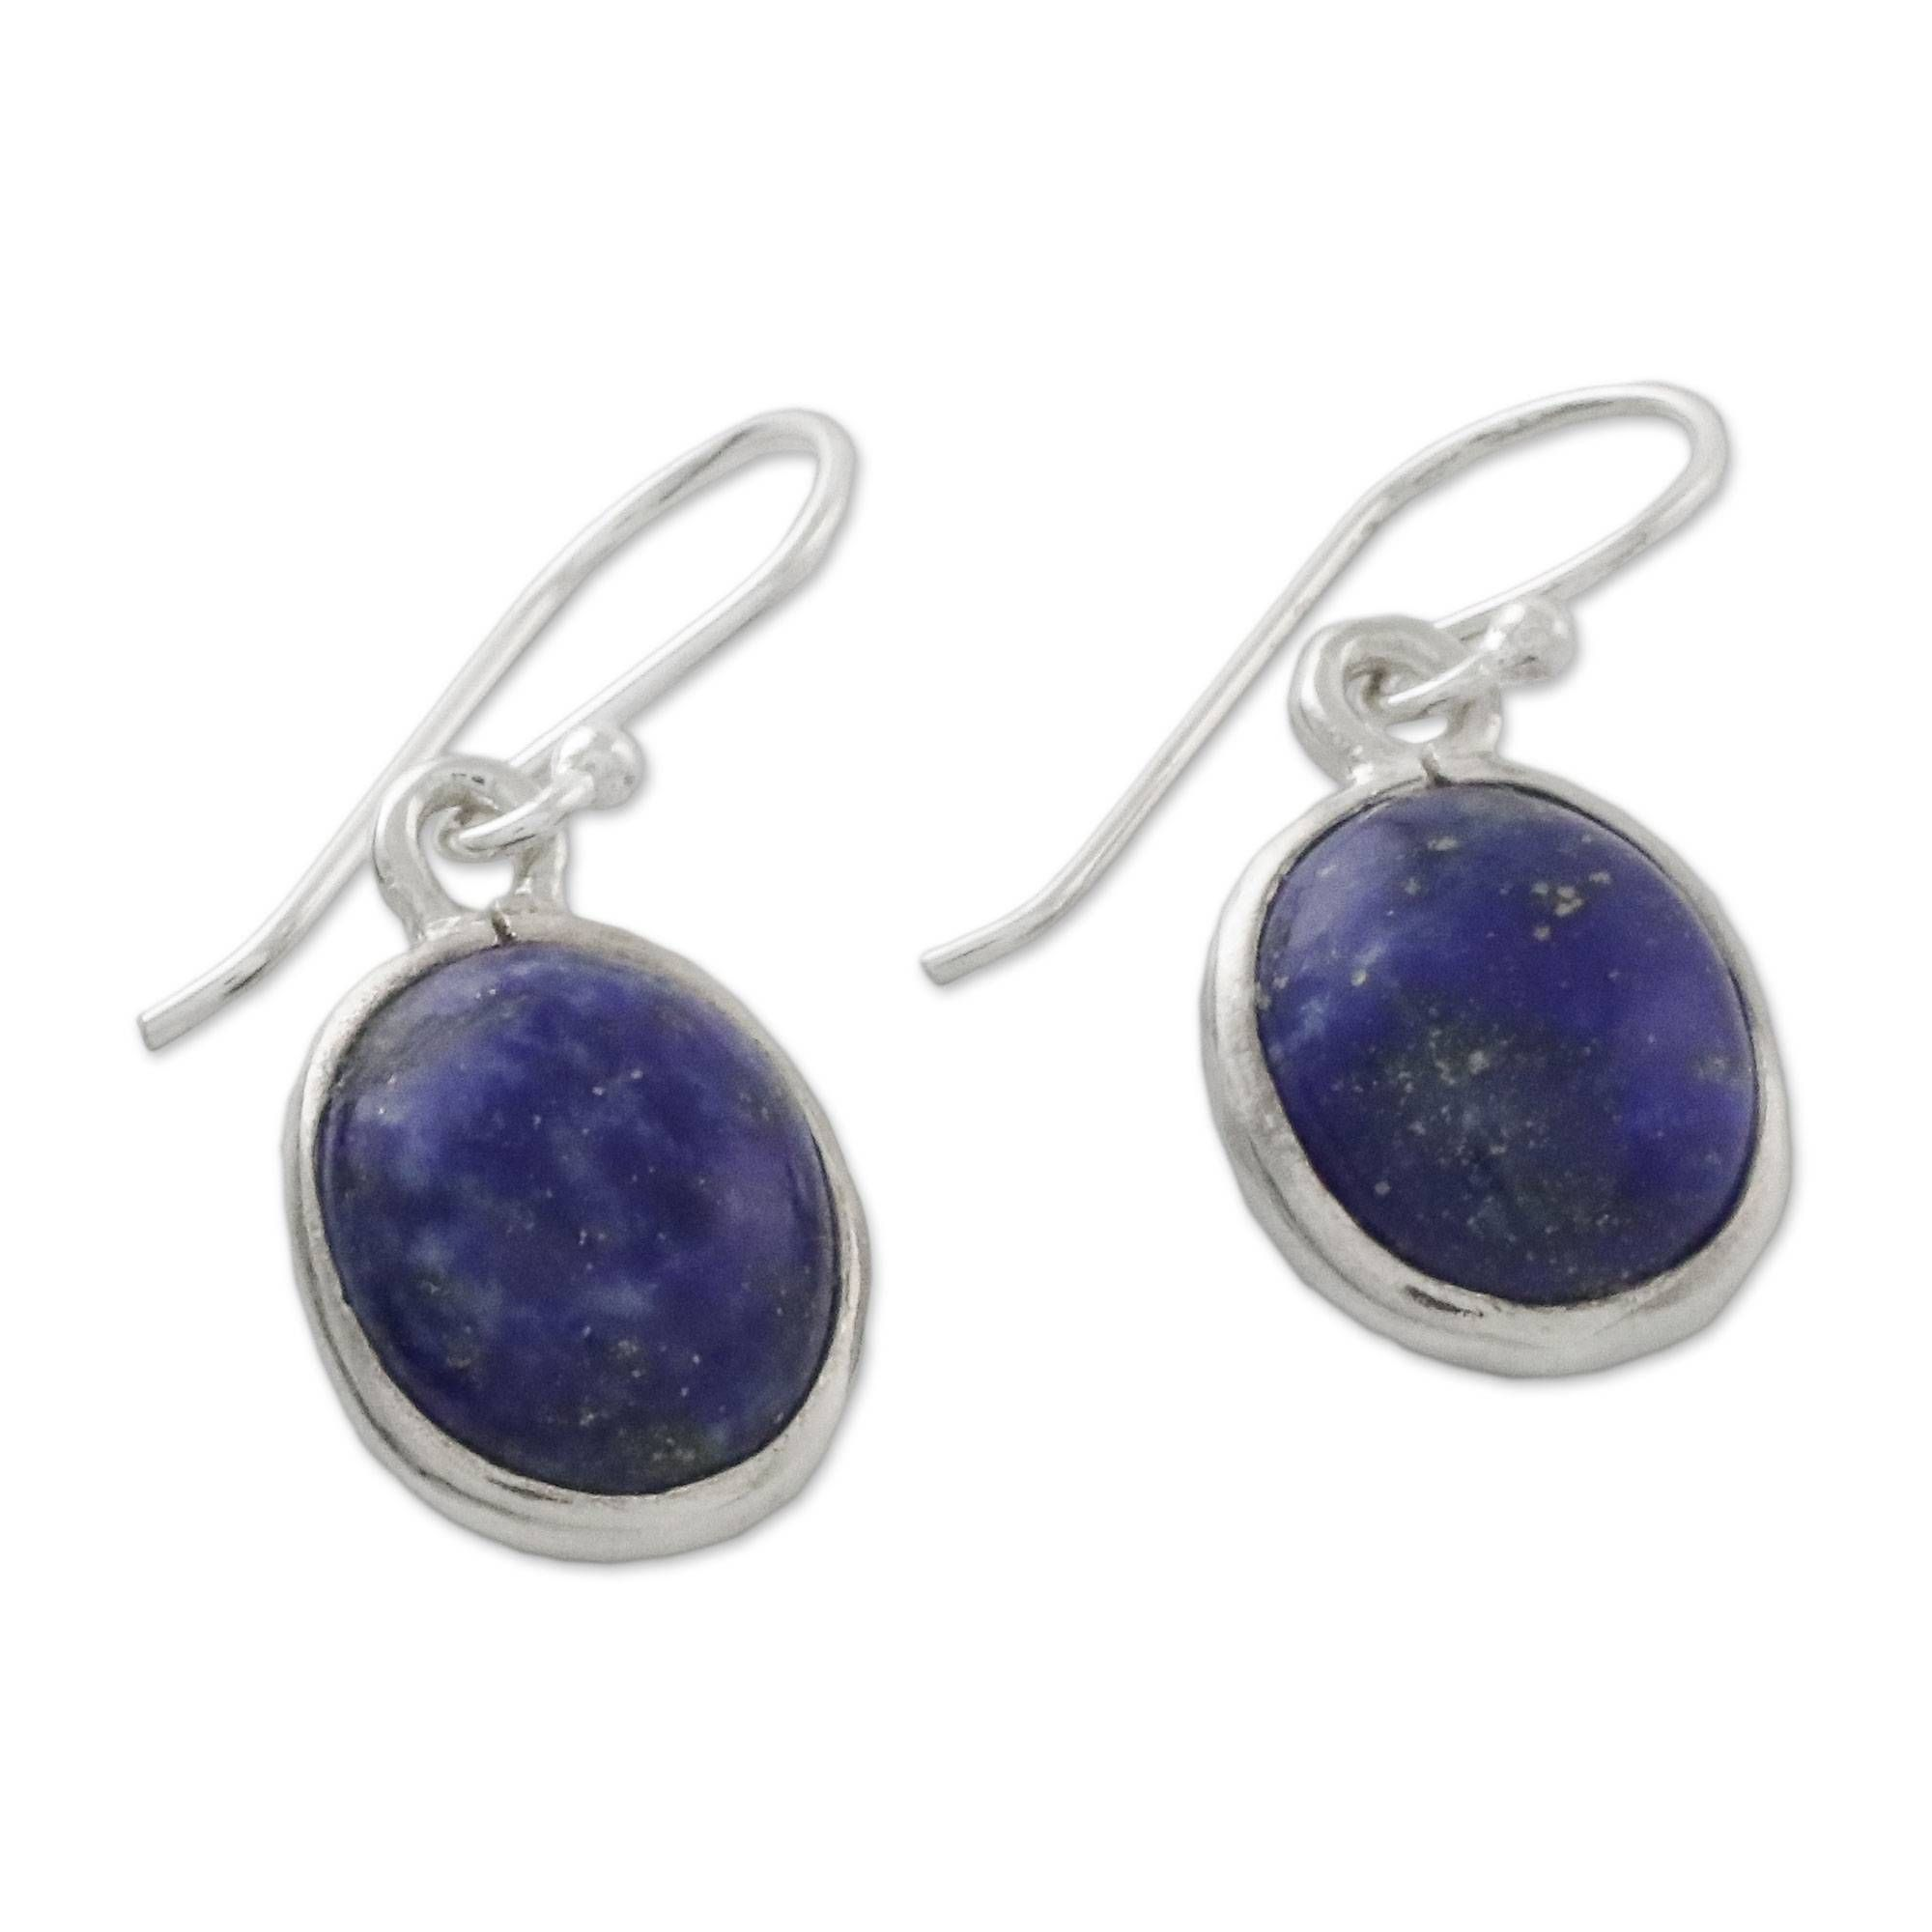 9ba43bf12 Thai Sterling Silver and Lapis Lazuli Earrings, 'Majestic Blue' in ...